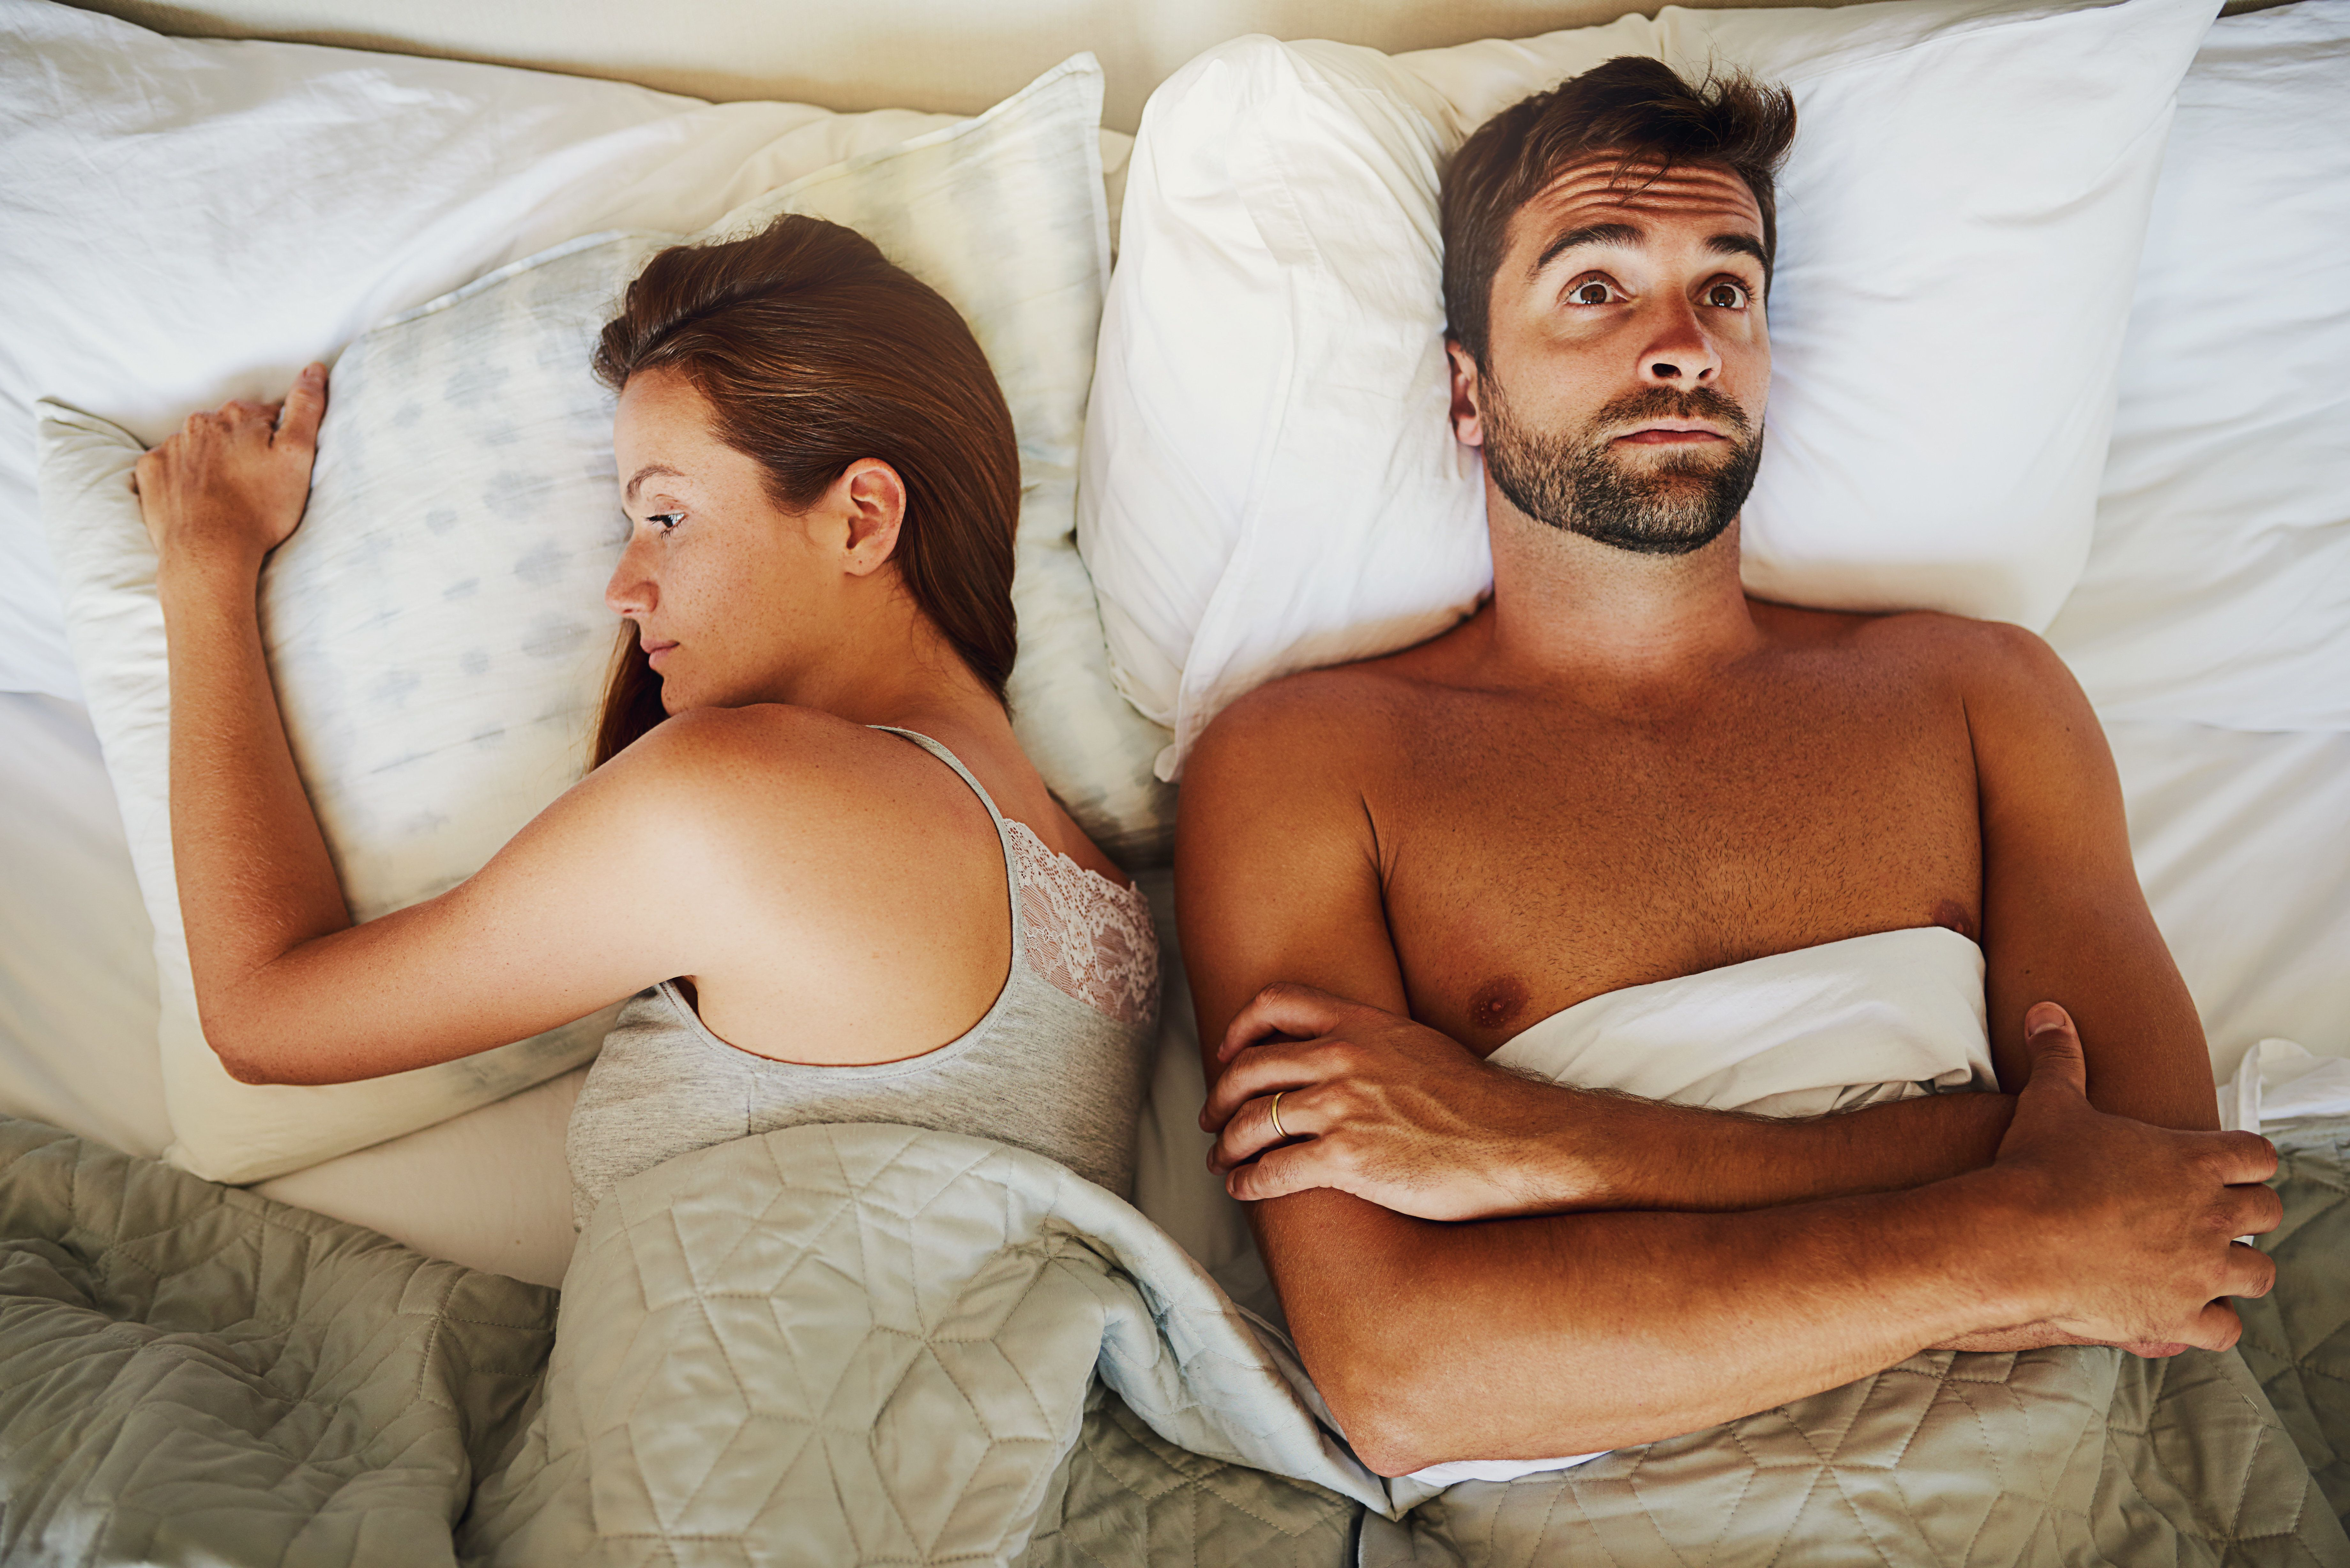 """Are different <a href=""""https://www.huffingtonpost.com/topic/sex"""">sex</a> drives in a <a href=""""https://www.huffingtonpost.com/section/relationships"""">relationship</a> a deal breaker? Experts say they don't have to be."""